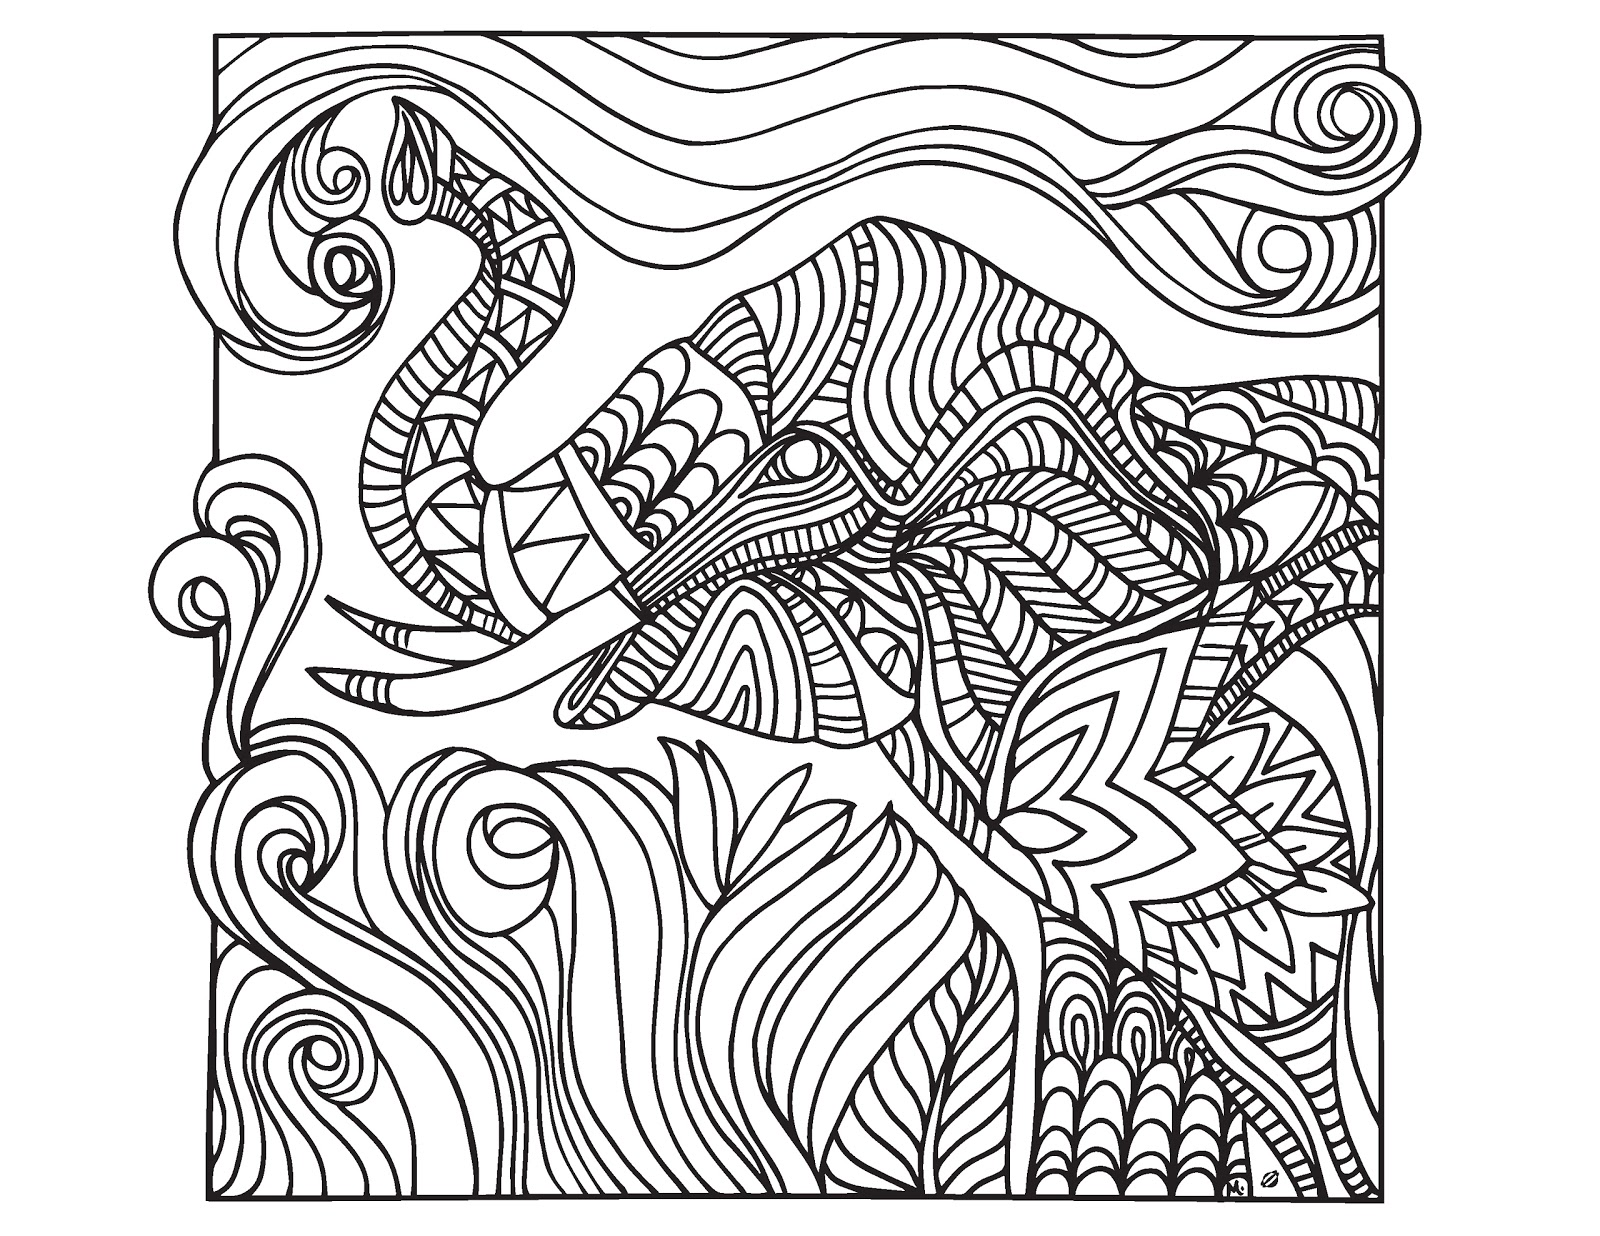 Grown up coloring pages cats and horses